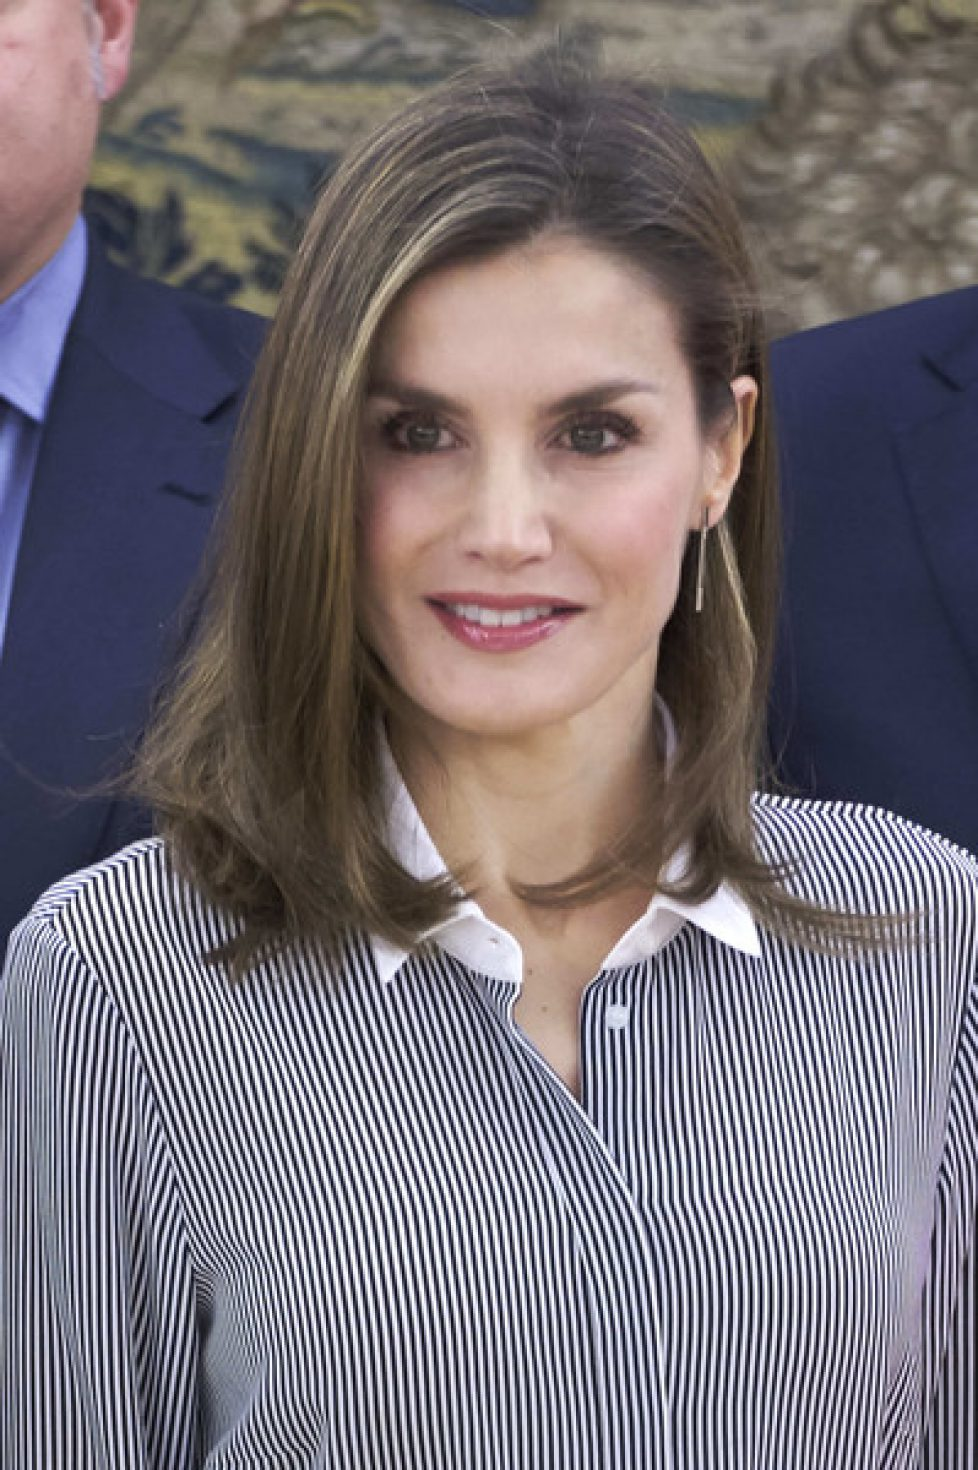 Queen+Letizia+Attends+Audiences+Zarzuela+Palace+q0g-0fOggDul